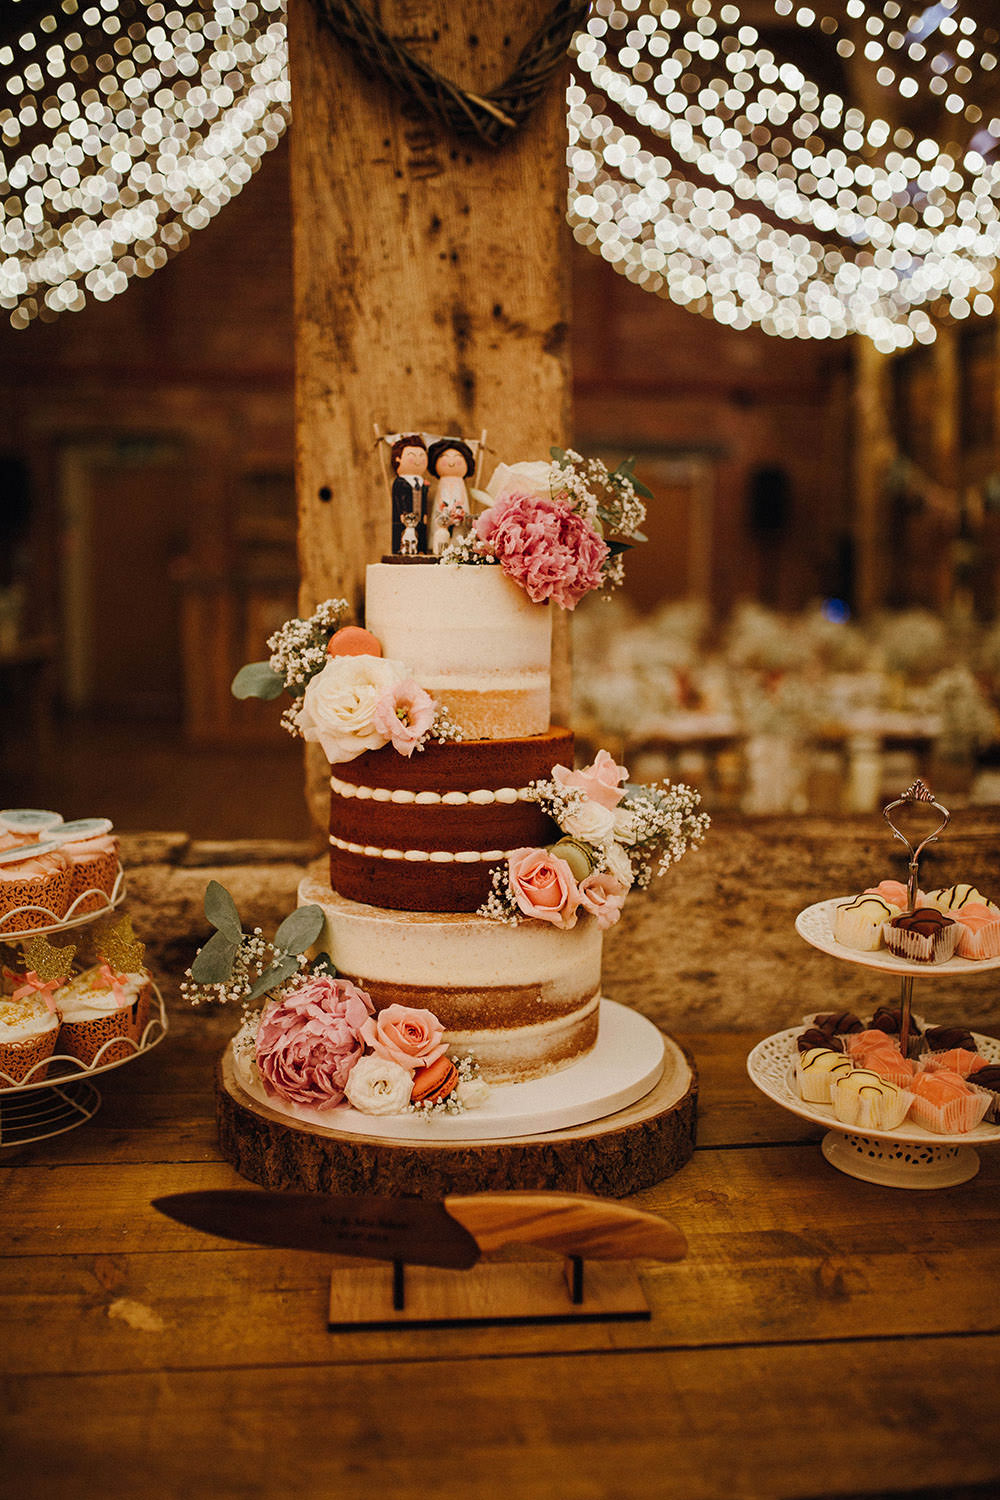 Naked Sponge Cake Flowers Toppers Pimhill Barn Wedding Shrophire Leah Lombardi Photography